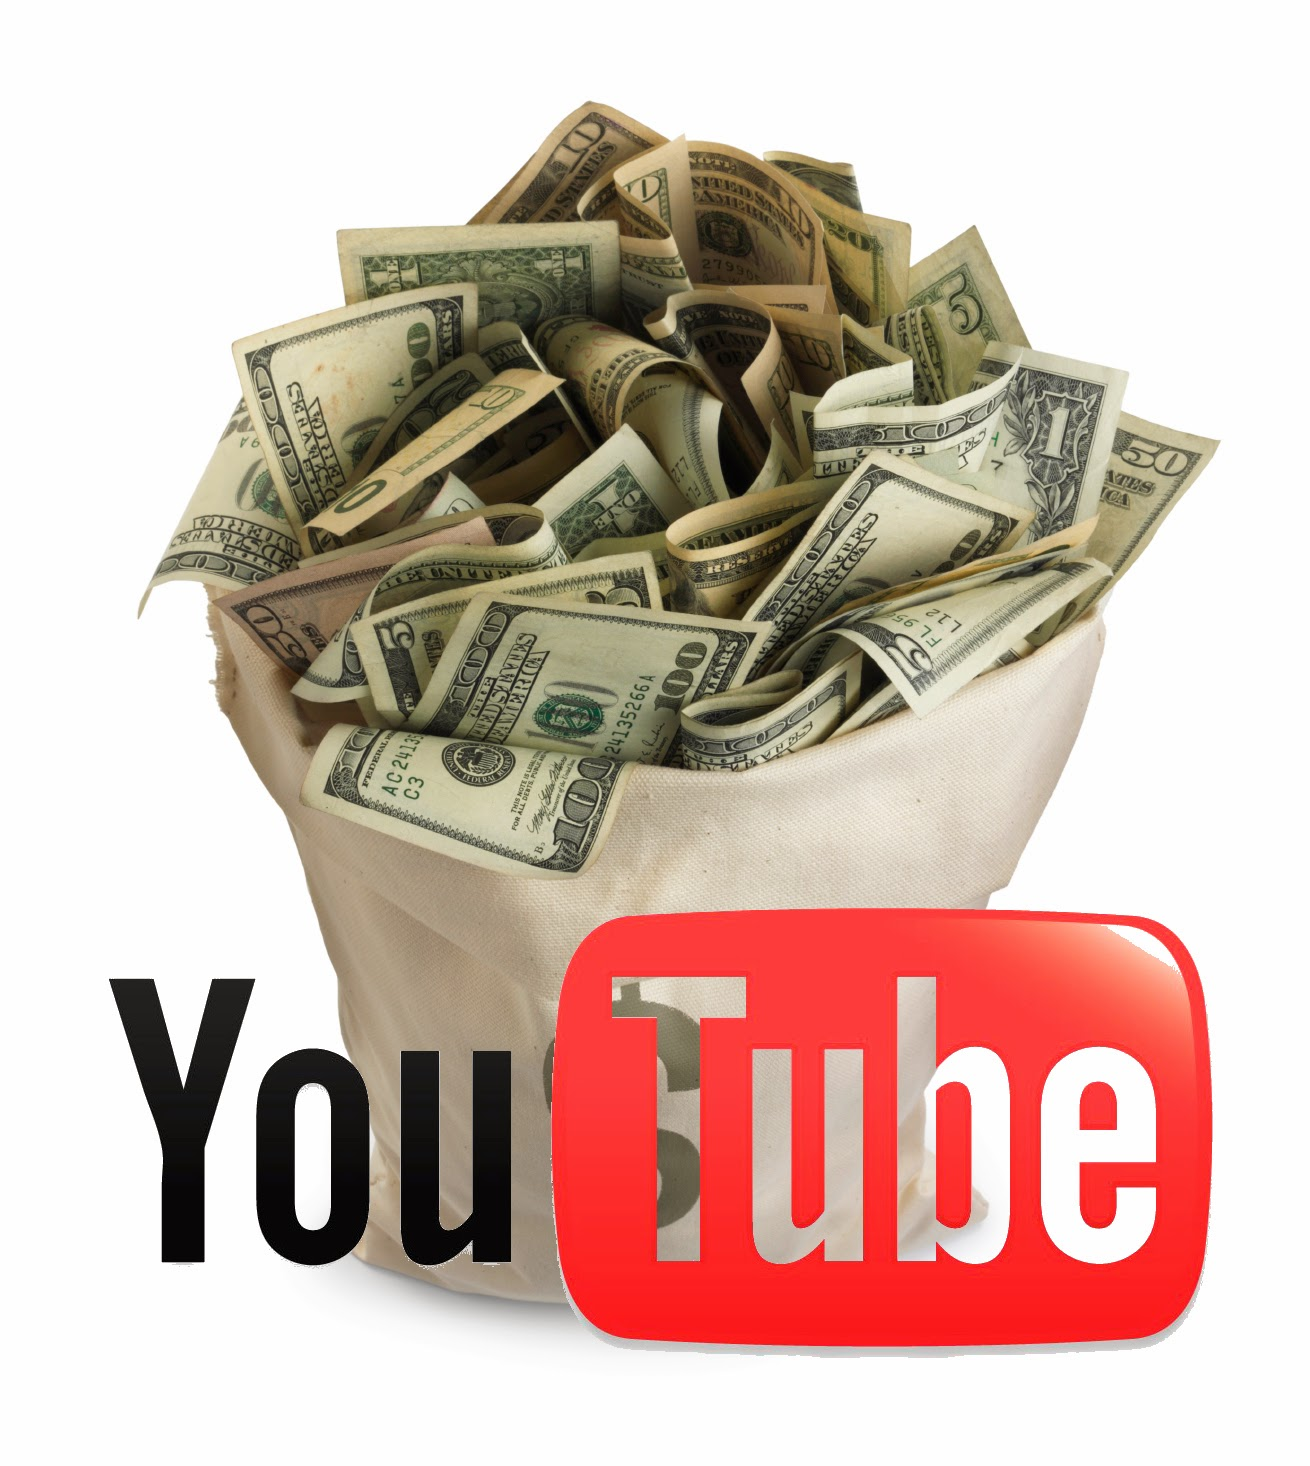 Youtube ve Para